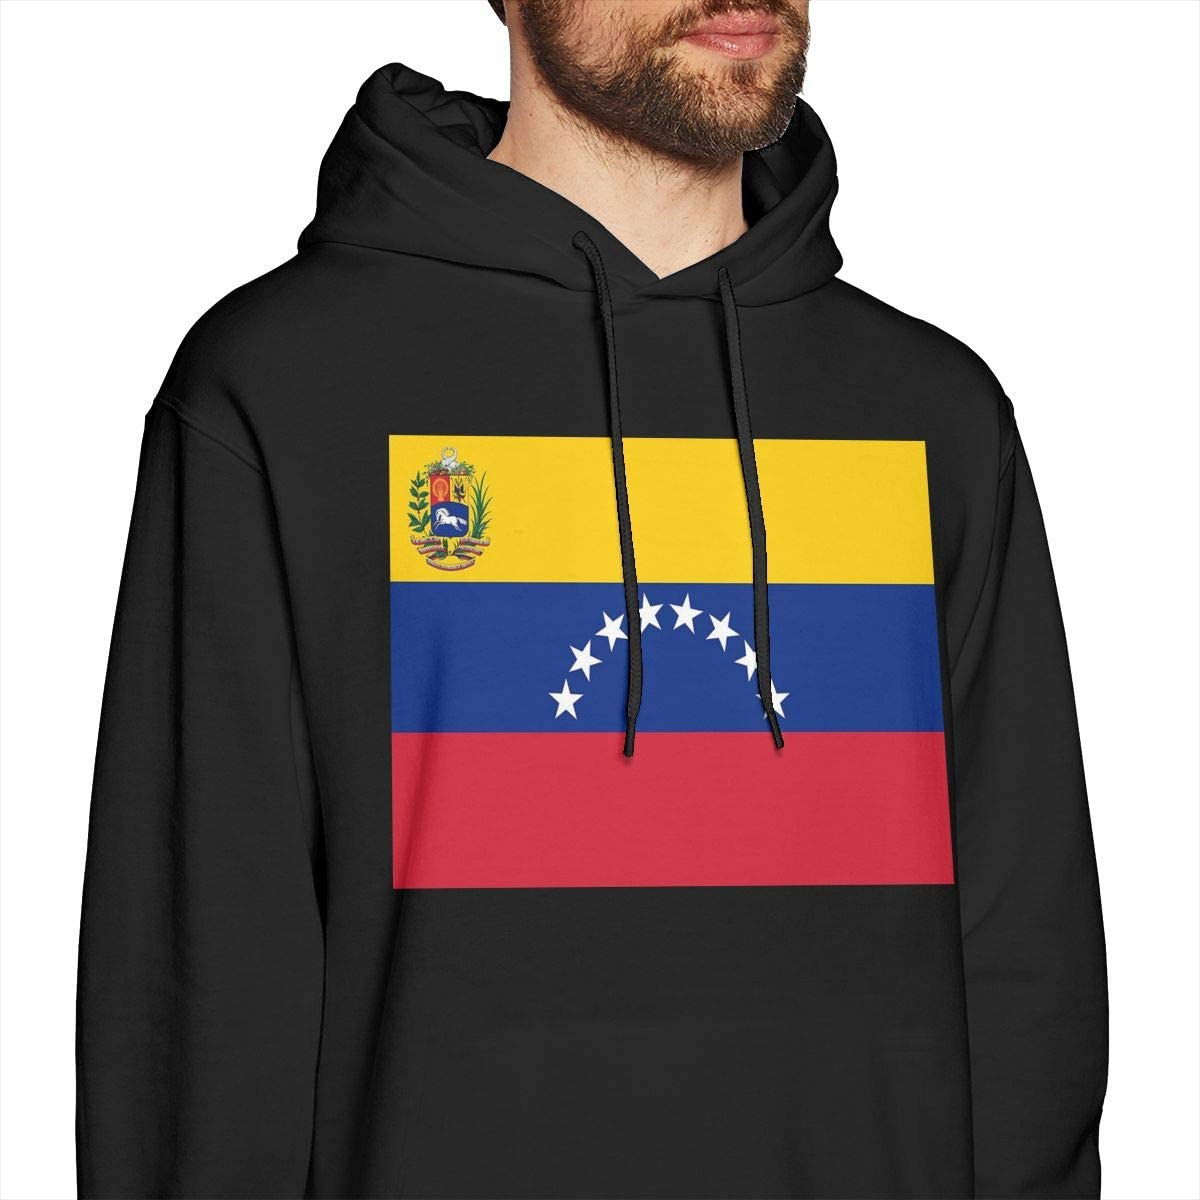 Mens Hoodies Venezuela Flag Fashion Pullover Hooded Print Sweatshirt Jackets